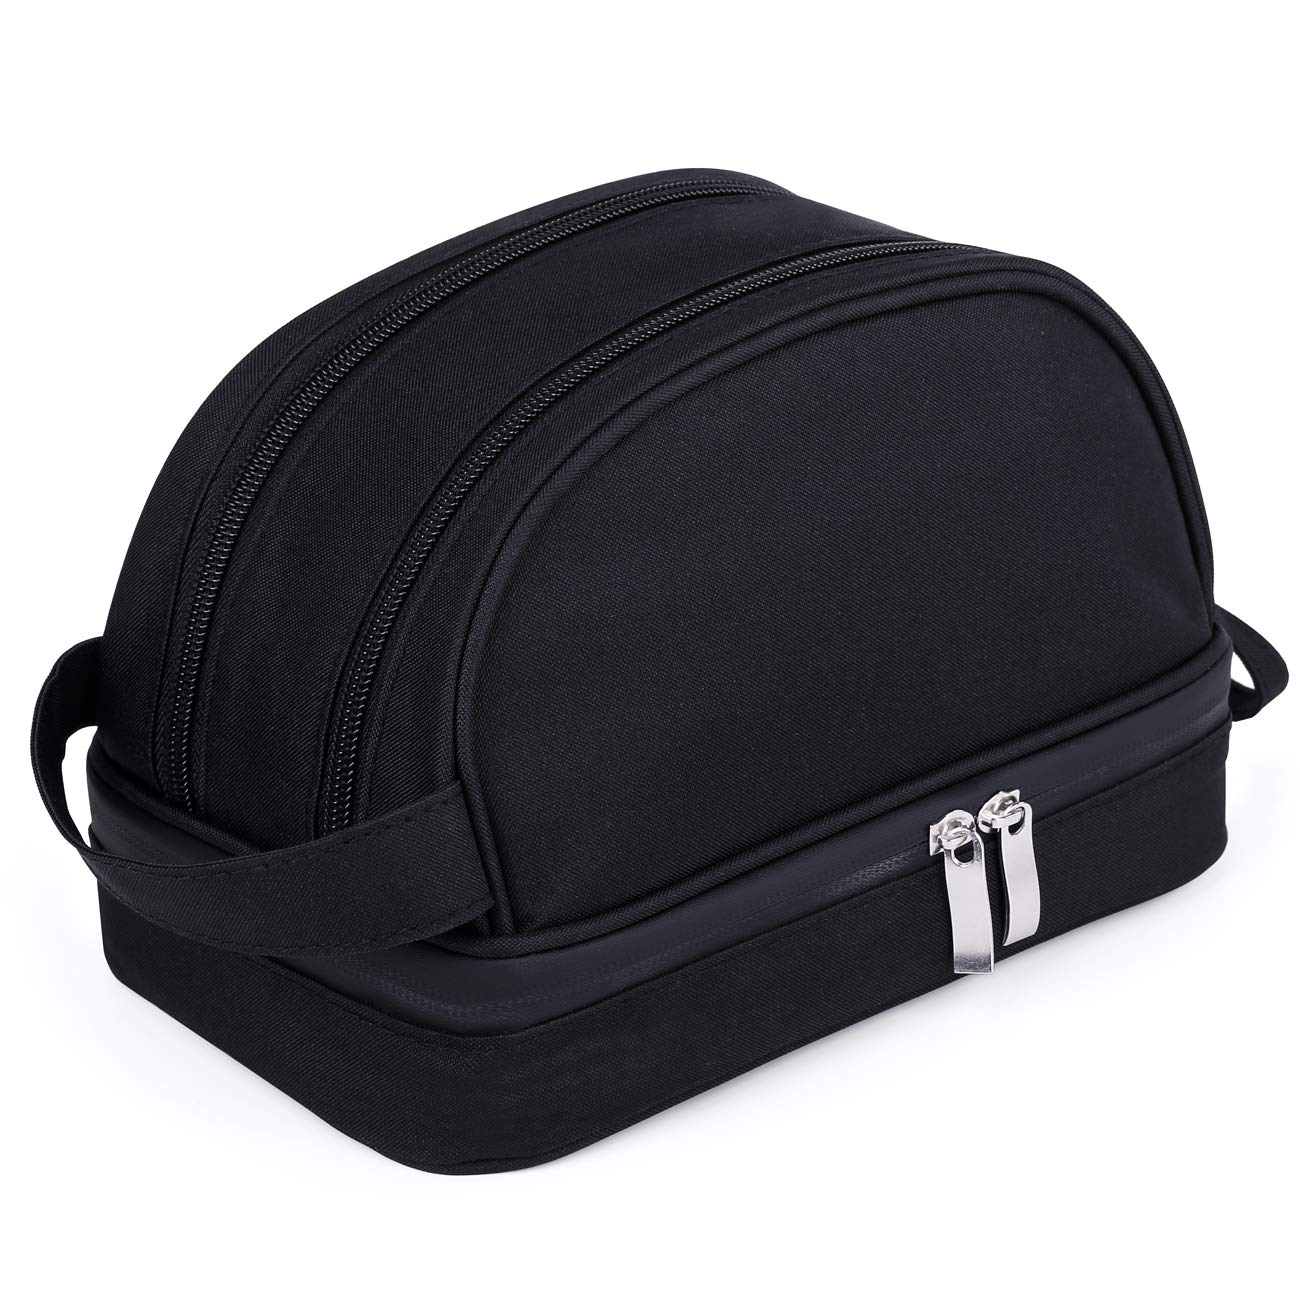 Valourgo Travel Size Toiletries Bag for Women And Men Tsa Approved Small Pouch Cosmetic Bag Makeup Bags